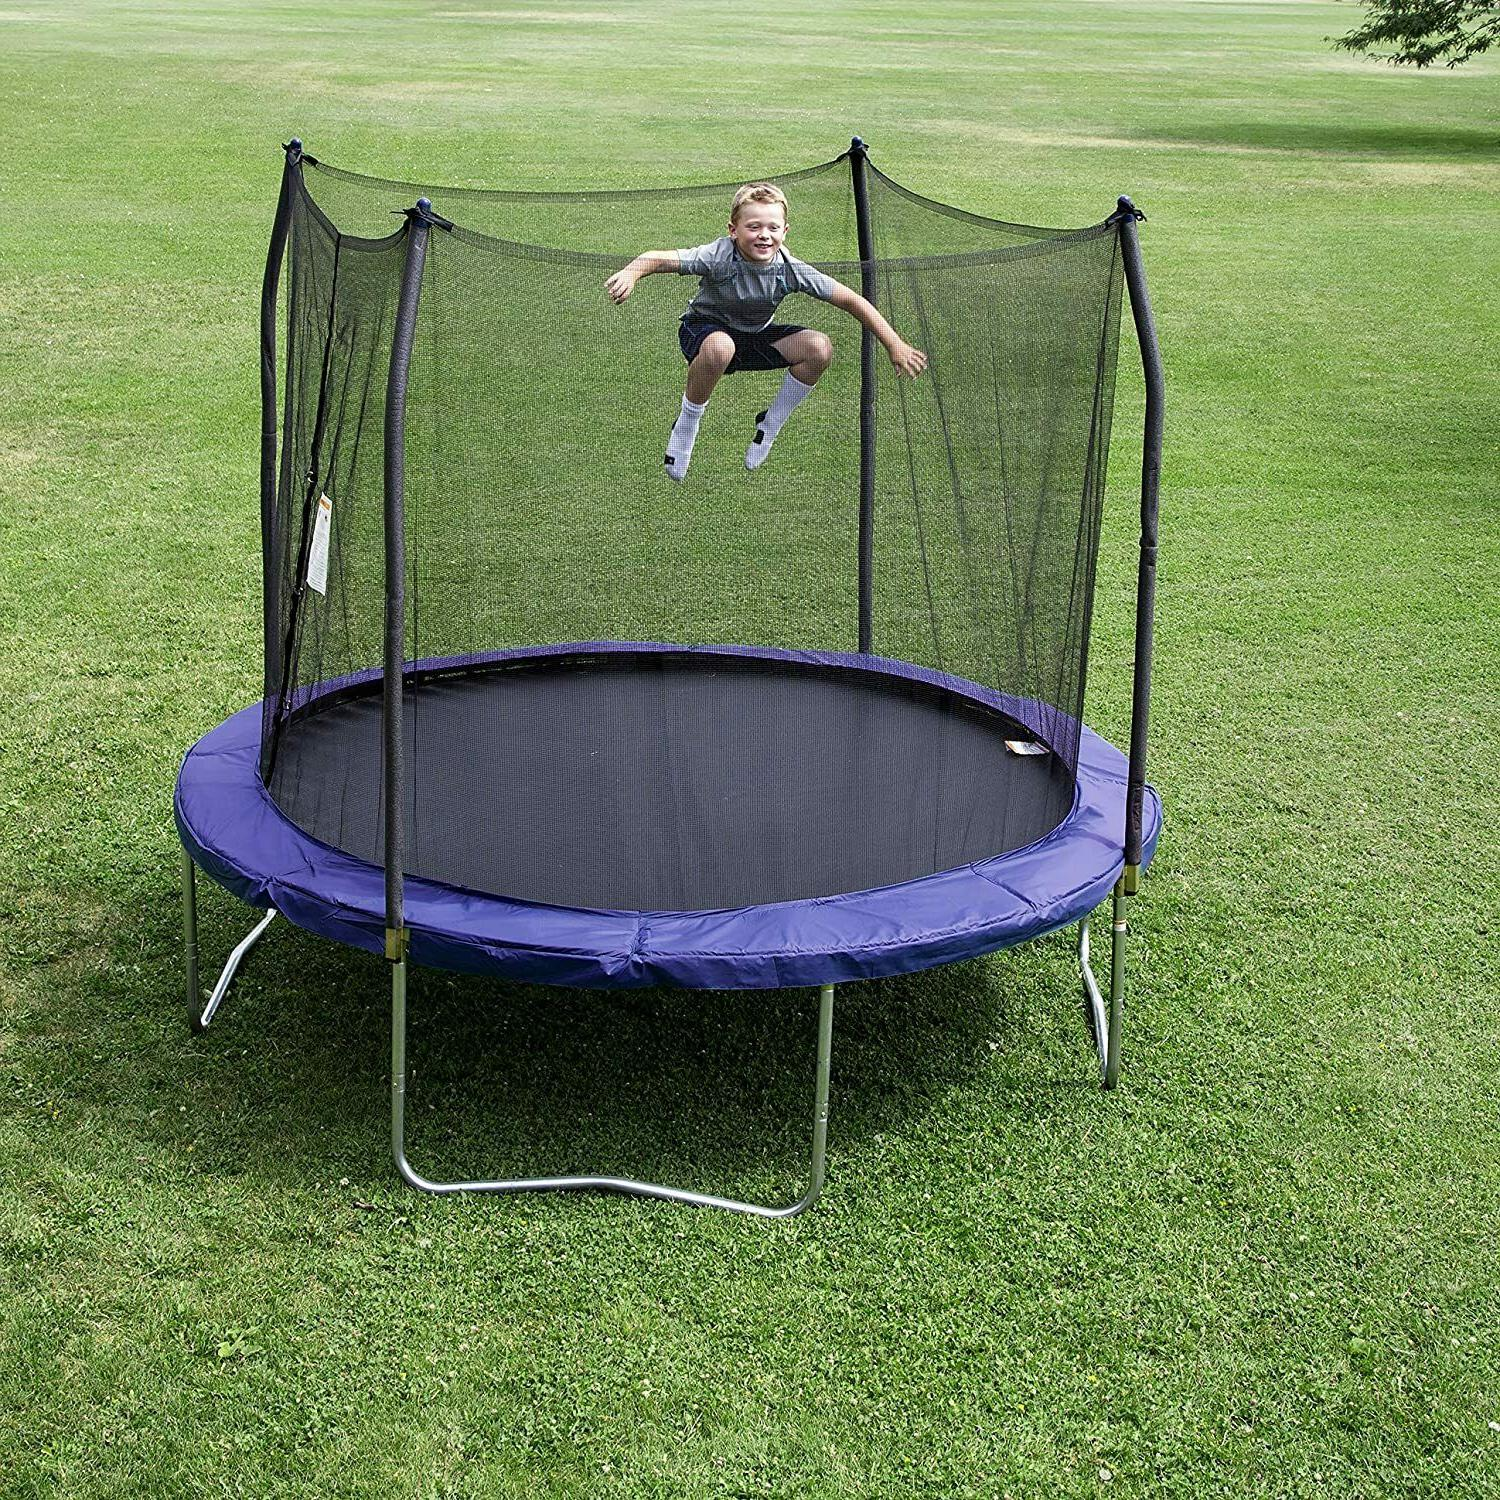 Skywalker Trampolines Round and with spring